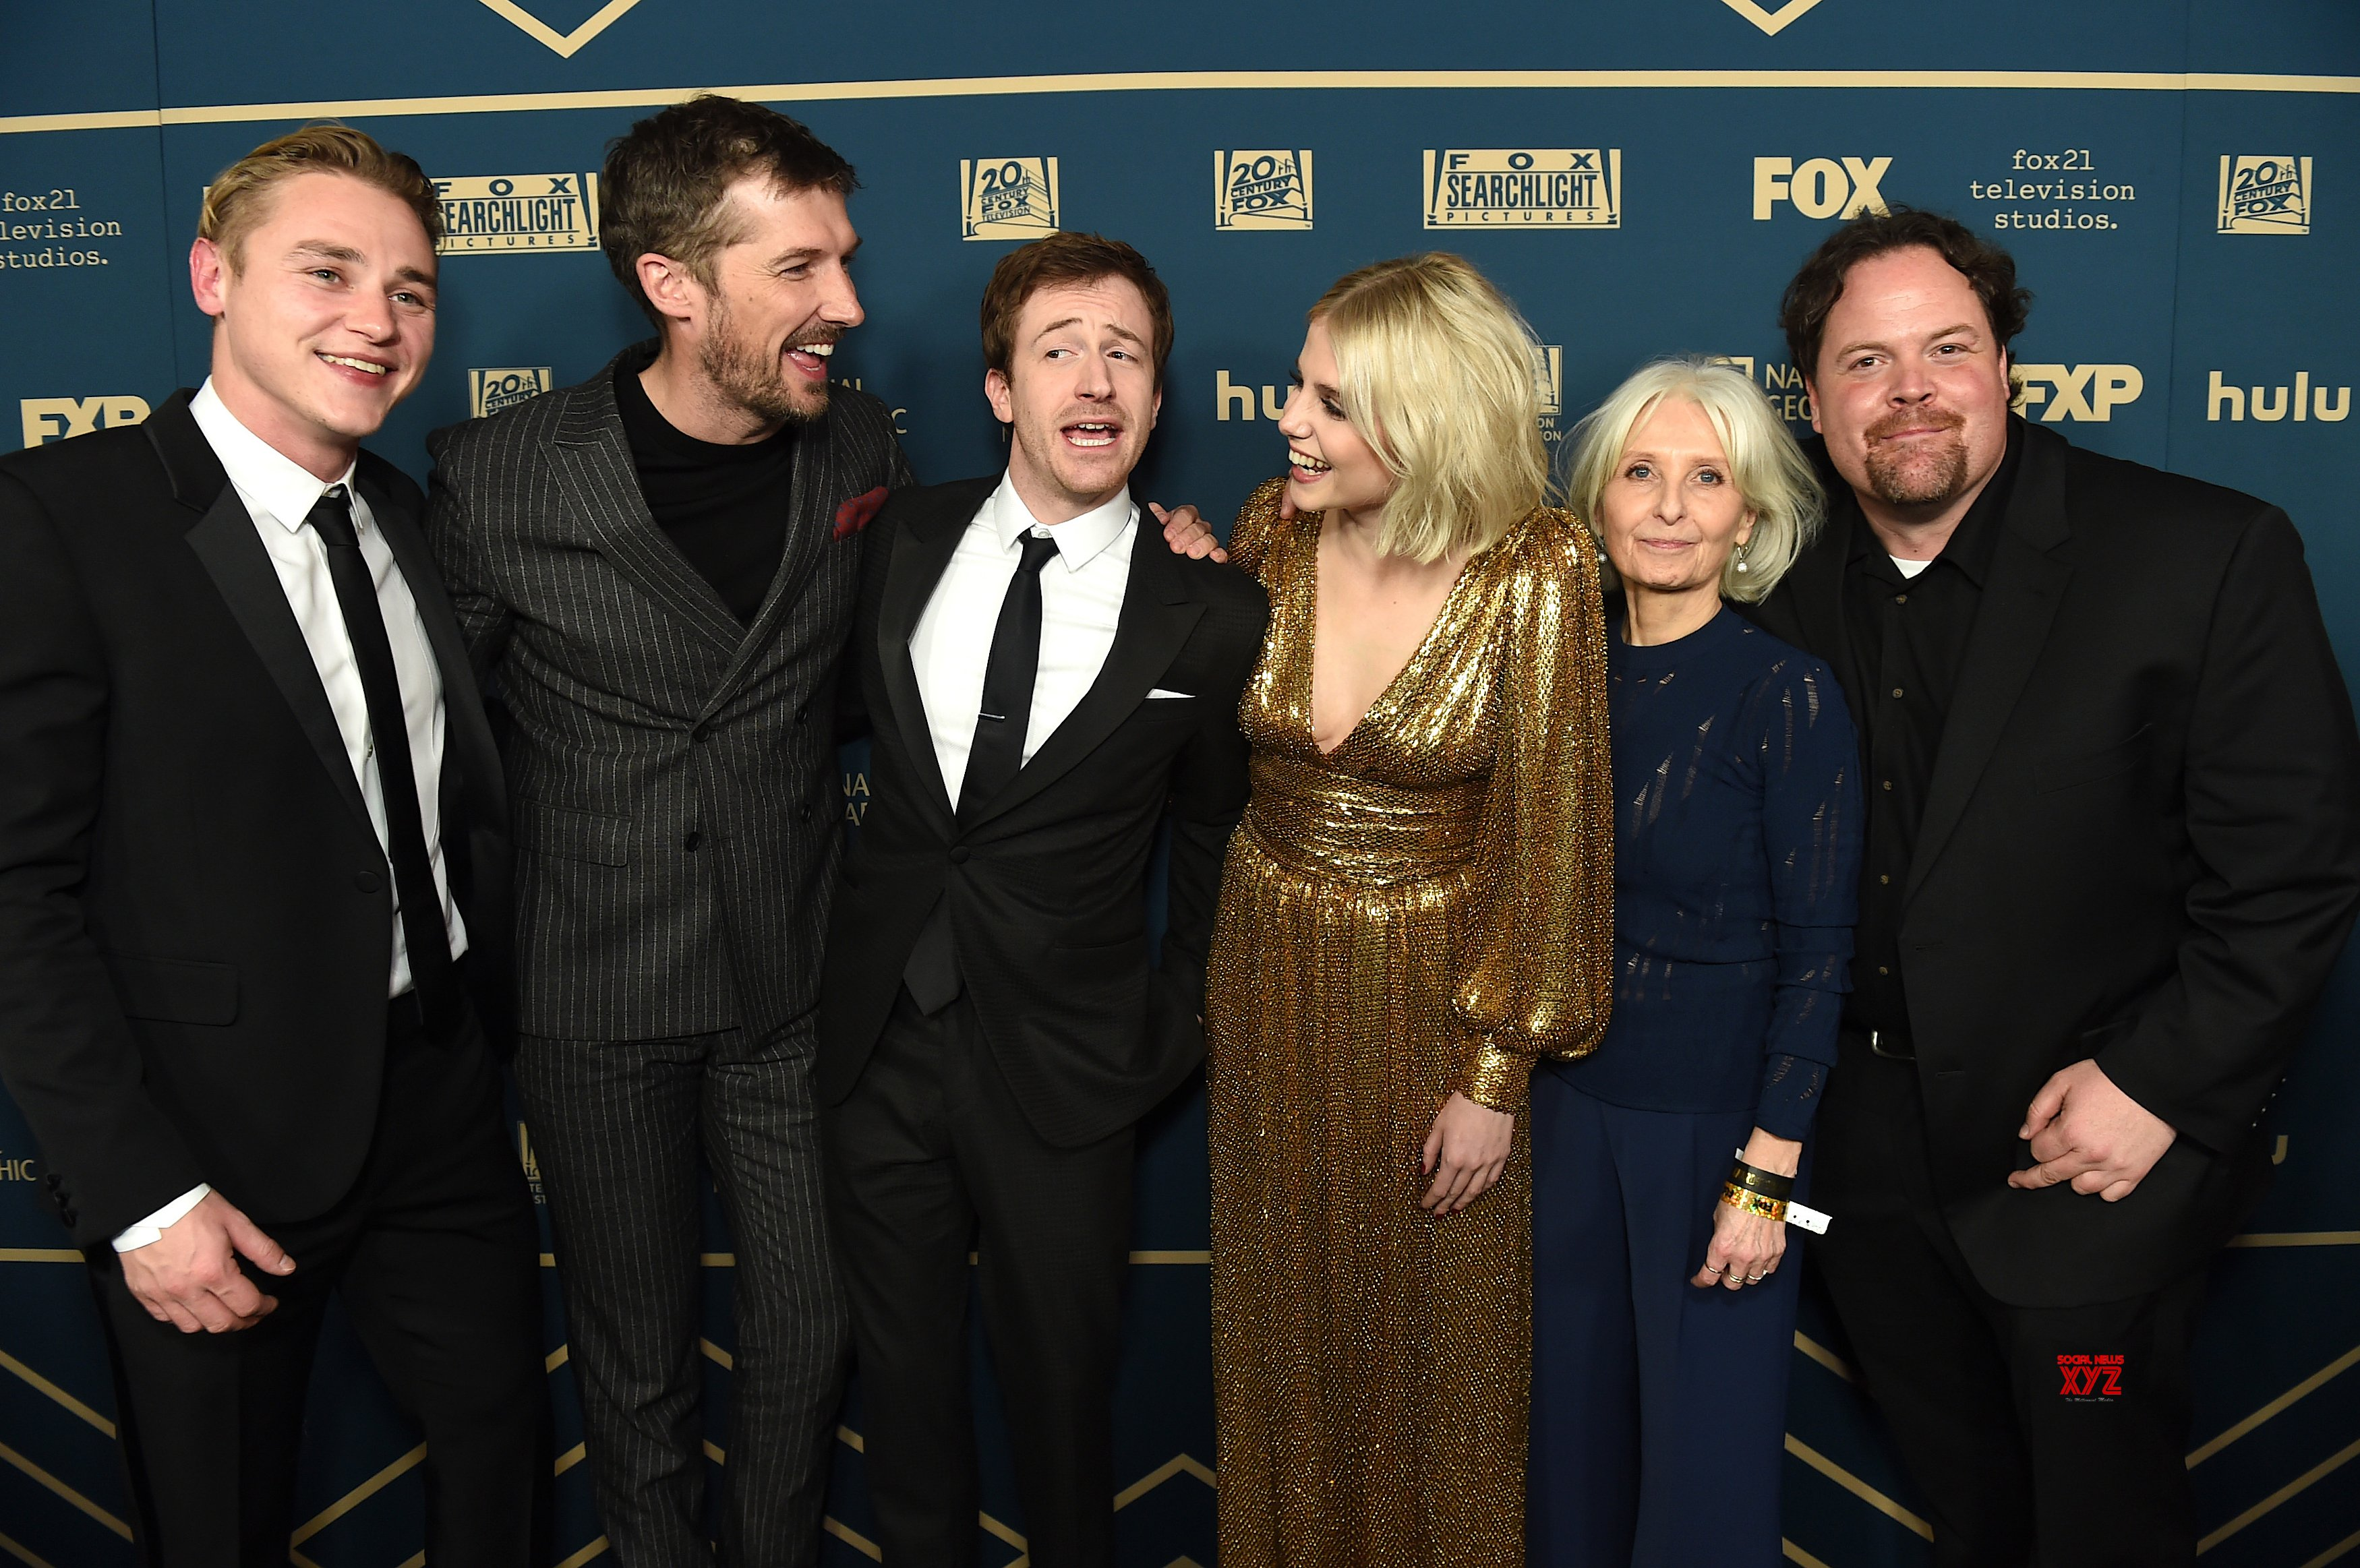 Bohemian Rhapsody Movie Team At Golden Globes Fox Party HD